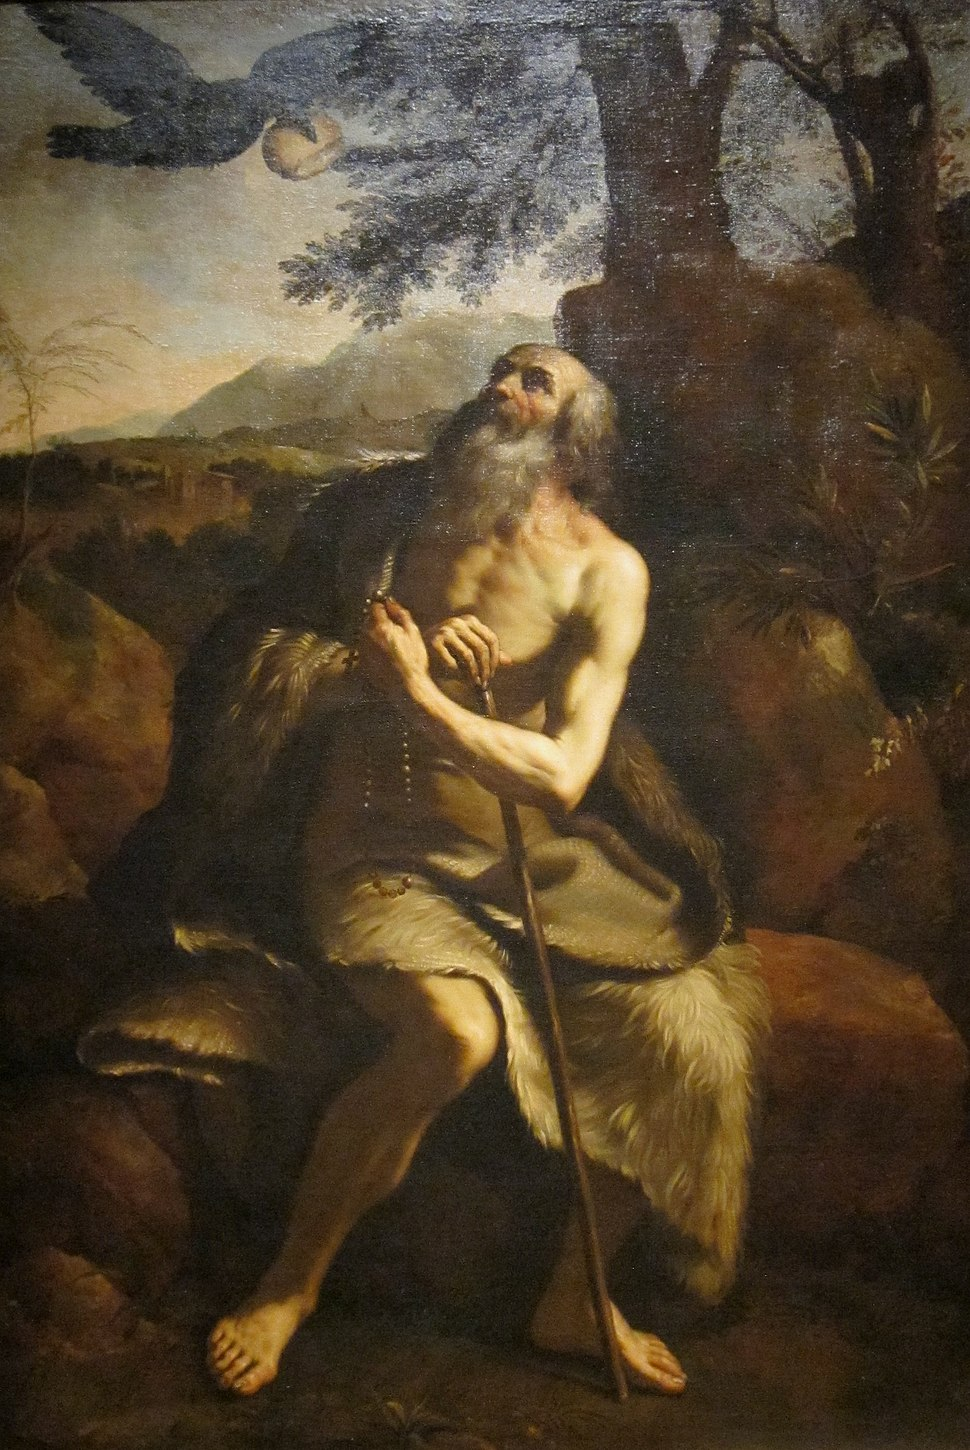 'St. Paul the Hermit Fed by the Raven', after Il Guercino, Dayton Art Institute